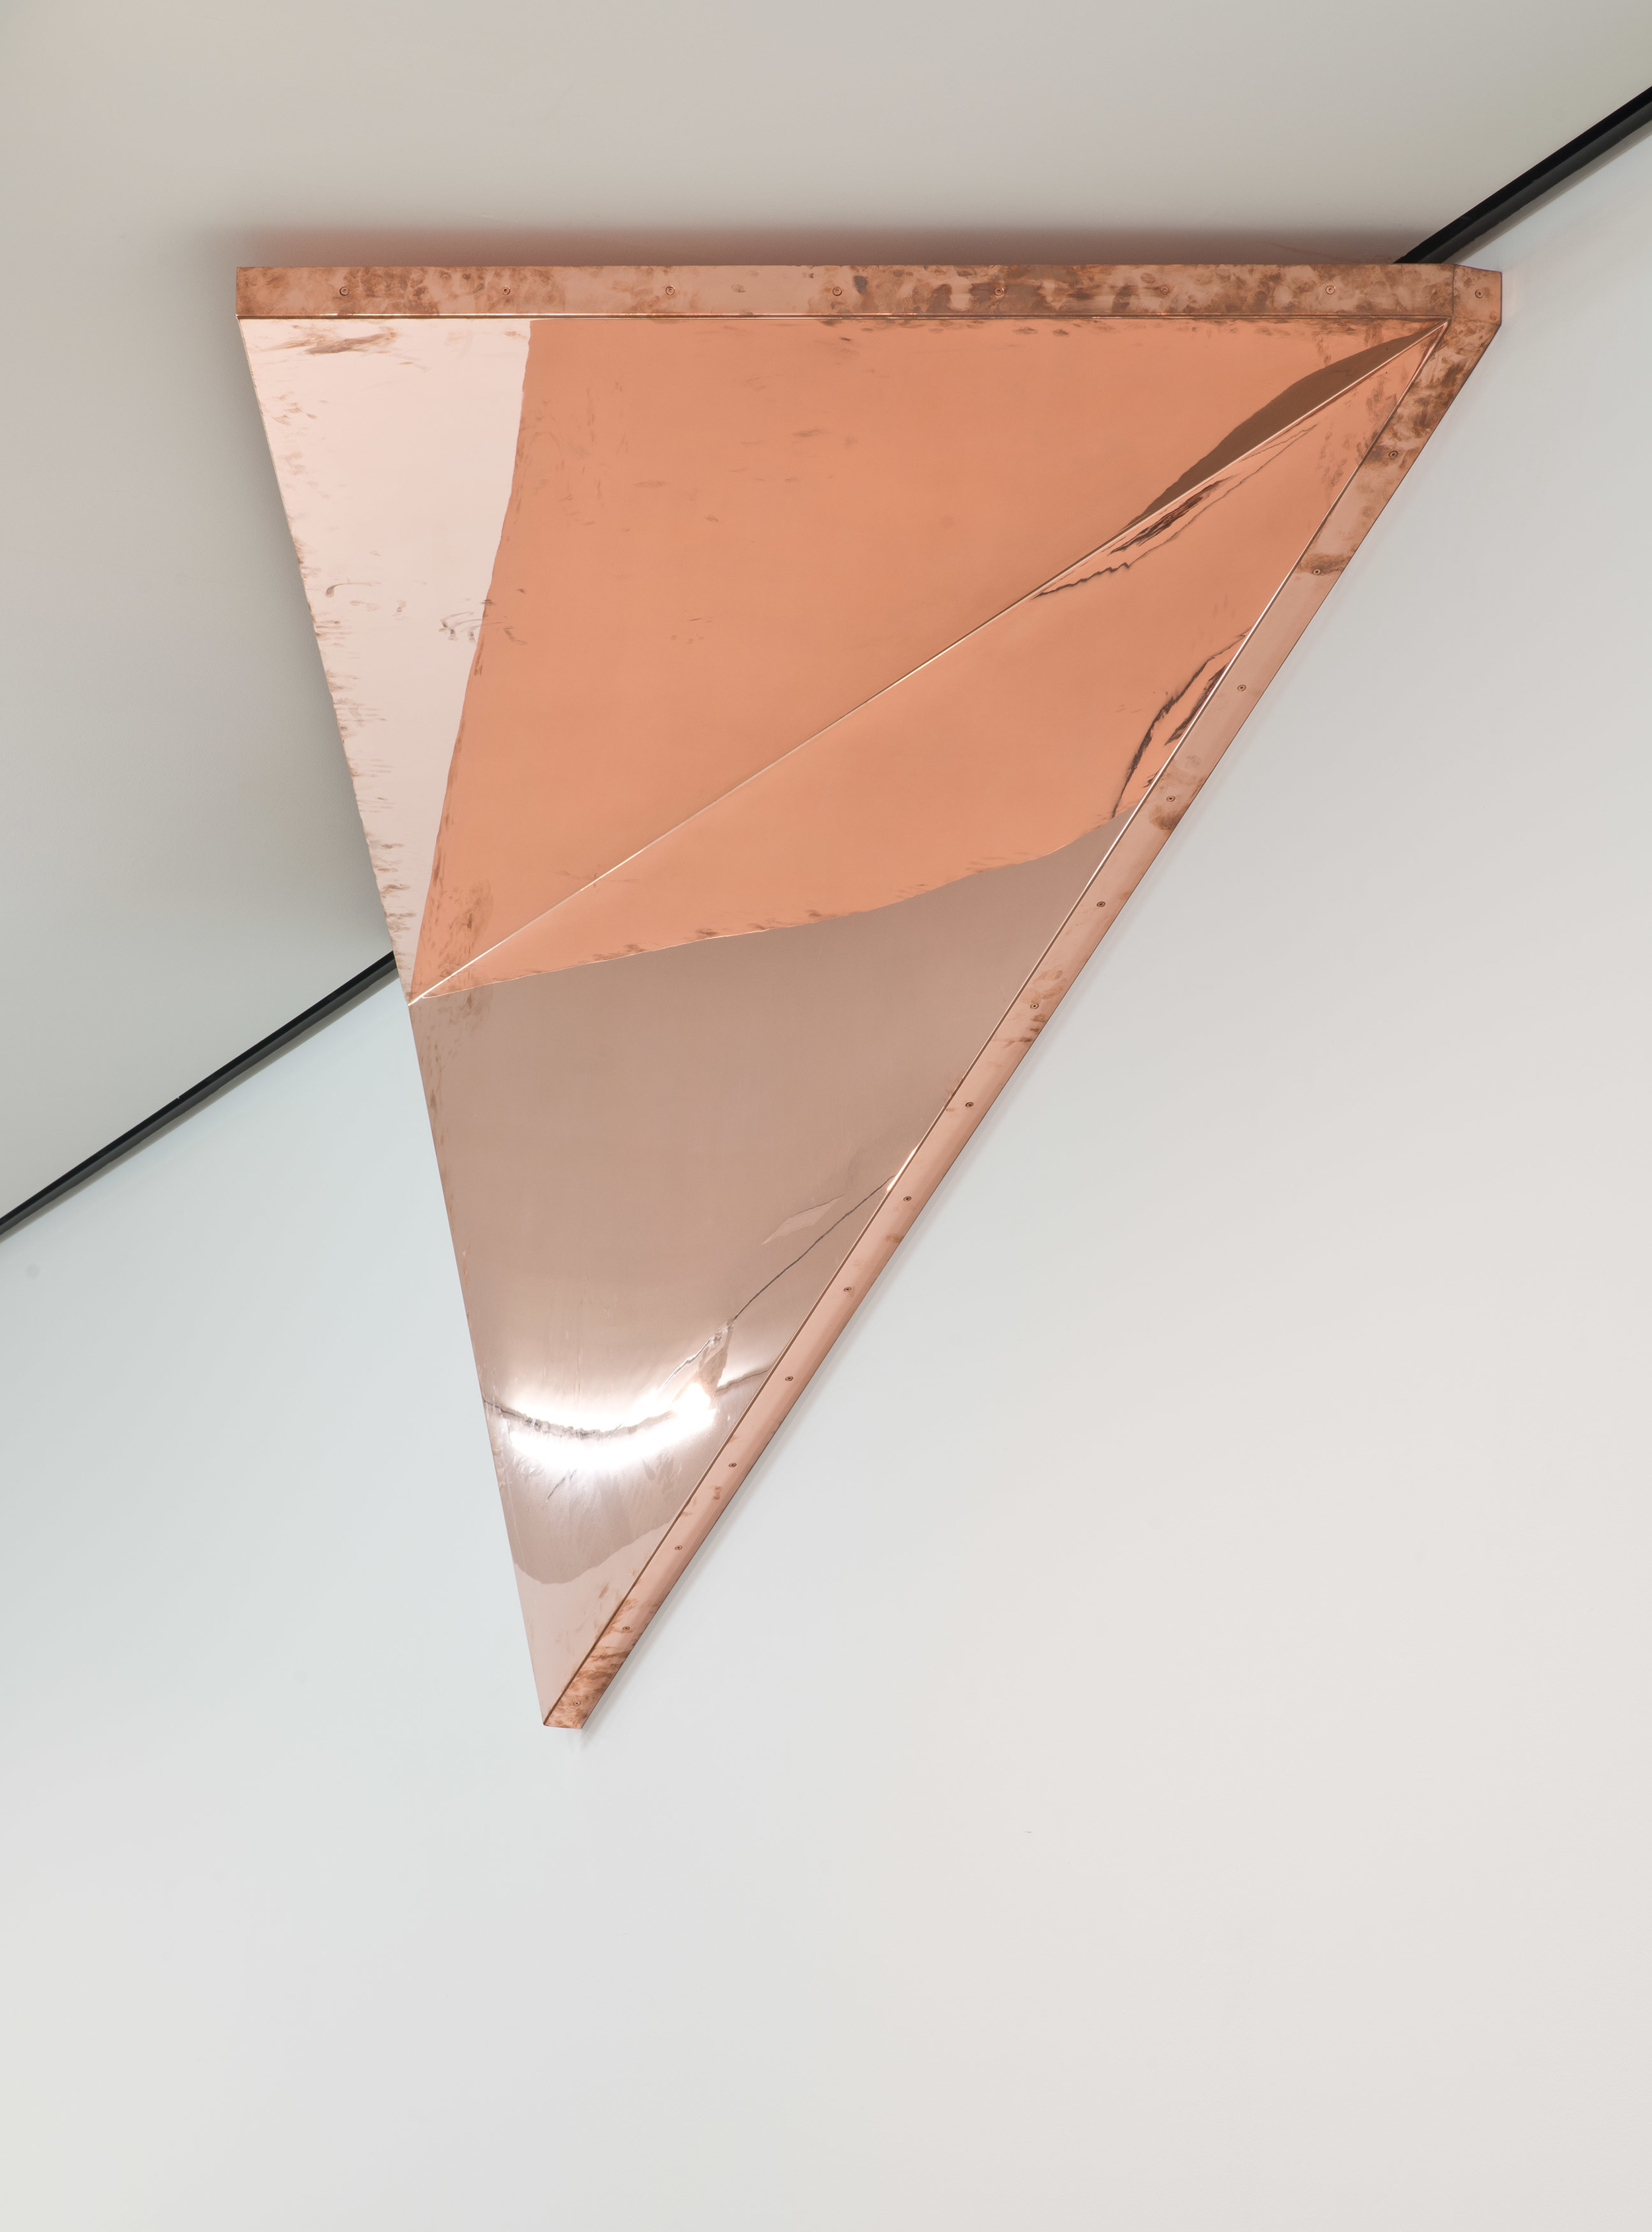 "Copper Surrogate (60"" x 120"" 48 ounce C11000 Copper Alloy, 90º Bend, 127 1/2"" 30º Diagonal / 150º Antidiagonal Bisection: February 20/April 5, 2014, Los Angeles, California)    2014–   Polished copper  120 x 60 x 50 inches   Selected Bodies of Work, 2014"